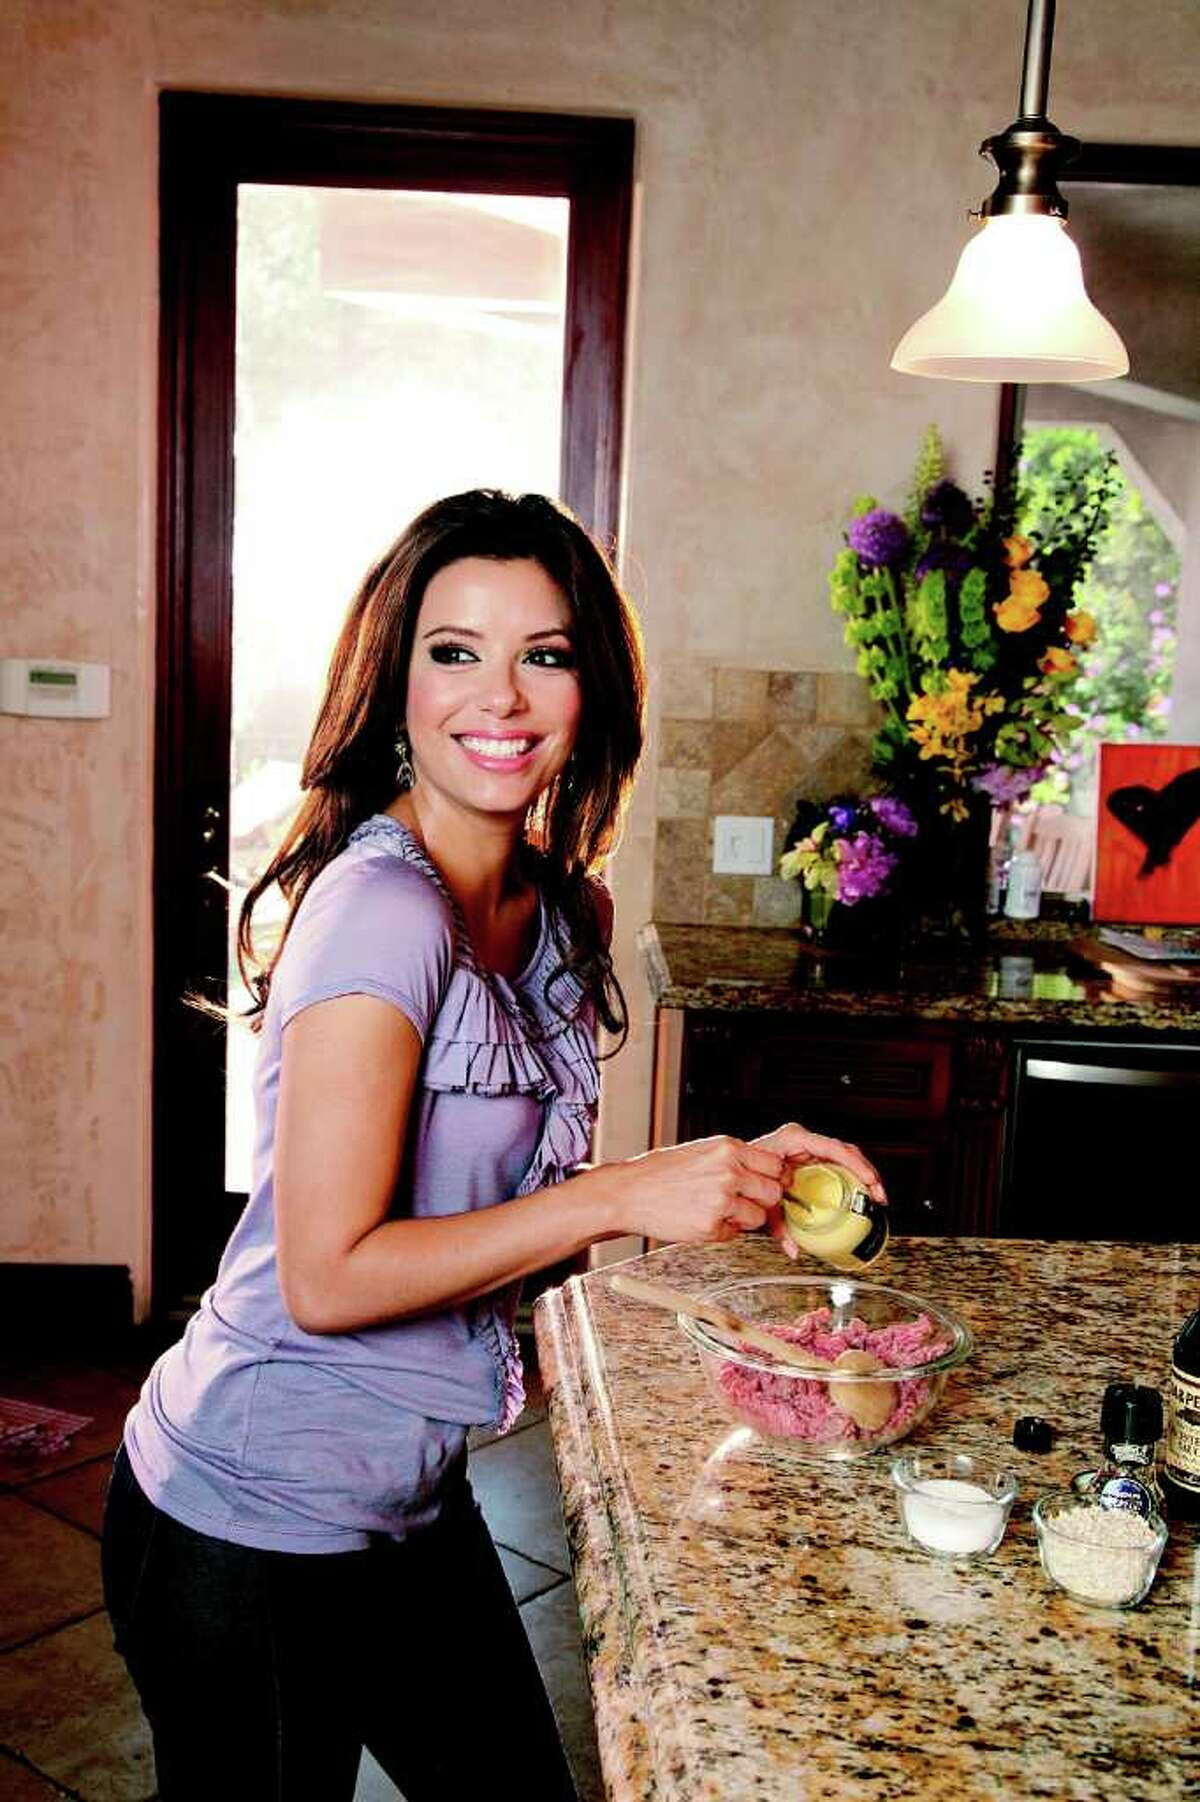 Cooking is a favorite pastime for actress Eva Longoria.